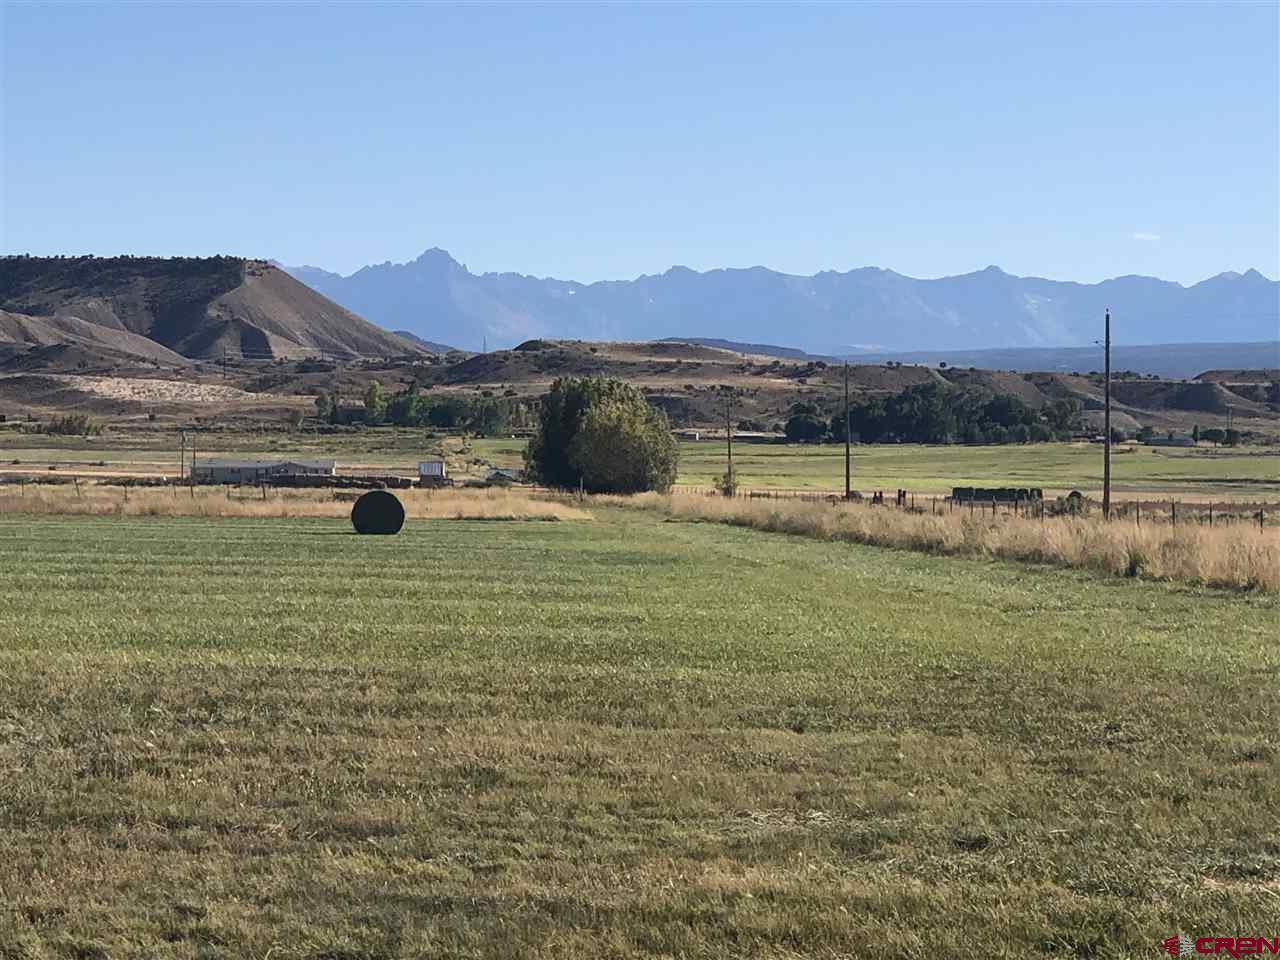 Quiet, close to town and great views. This property would be a nice place to build your new home, have your horses and any other livestock. Joins the BLM, which will open up a lot more area for you to access. 66+/- irrigated acres will give you plenty of hay and pasture for your animals. Water tap installed, minutes from town and great views of the San Juan Mountains. Come take a look!